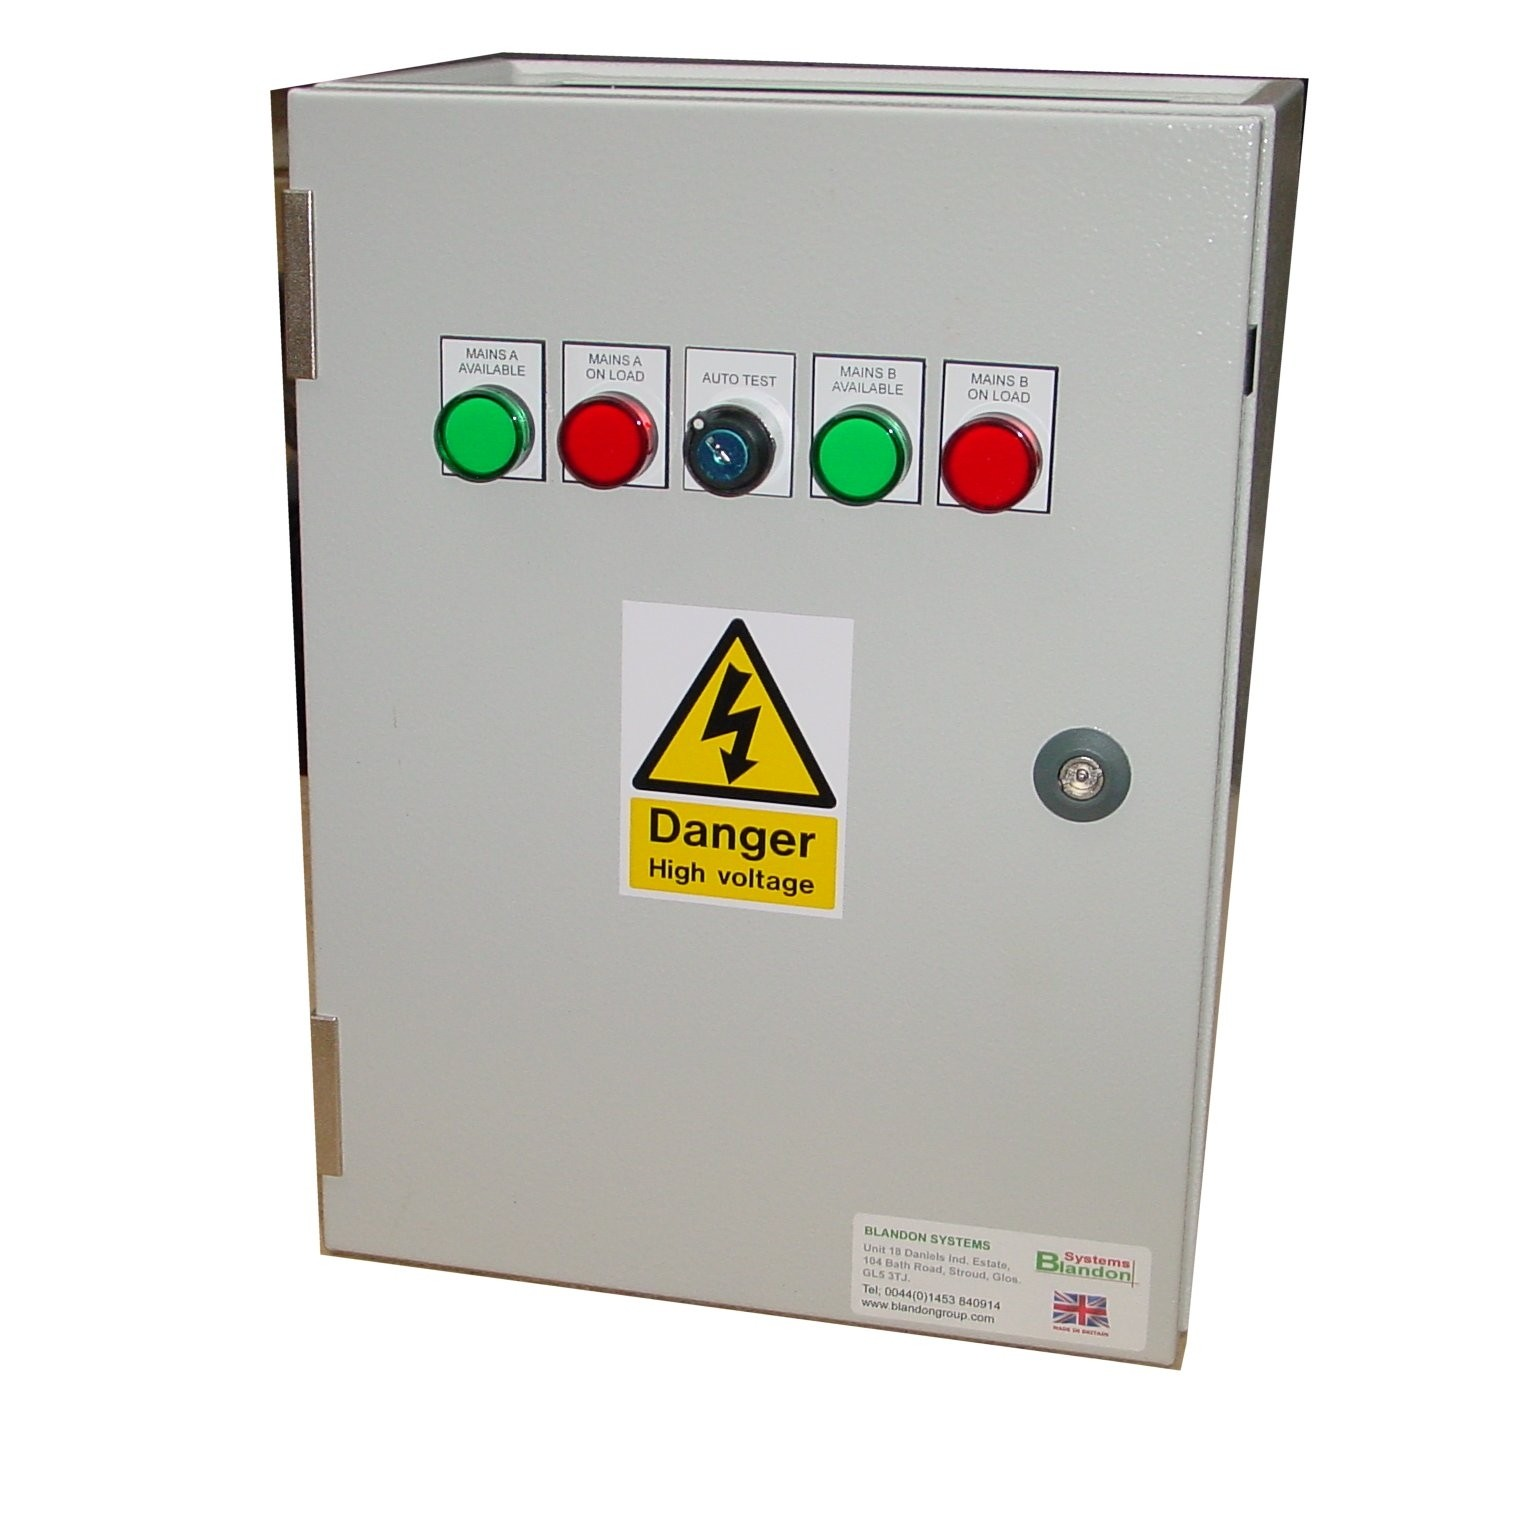 45A ATS 3 Phase 400V, UVR Controlled, ABB Contactors